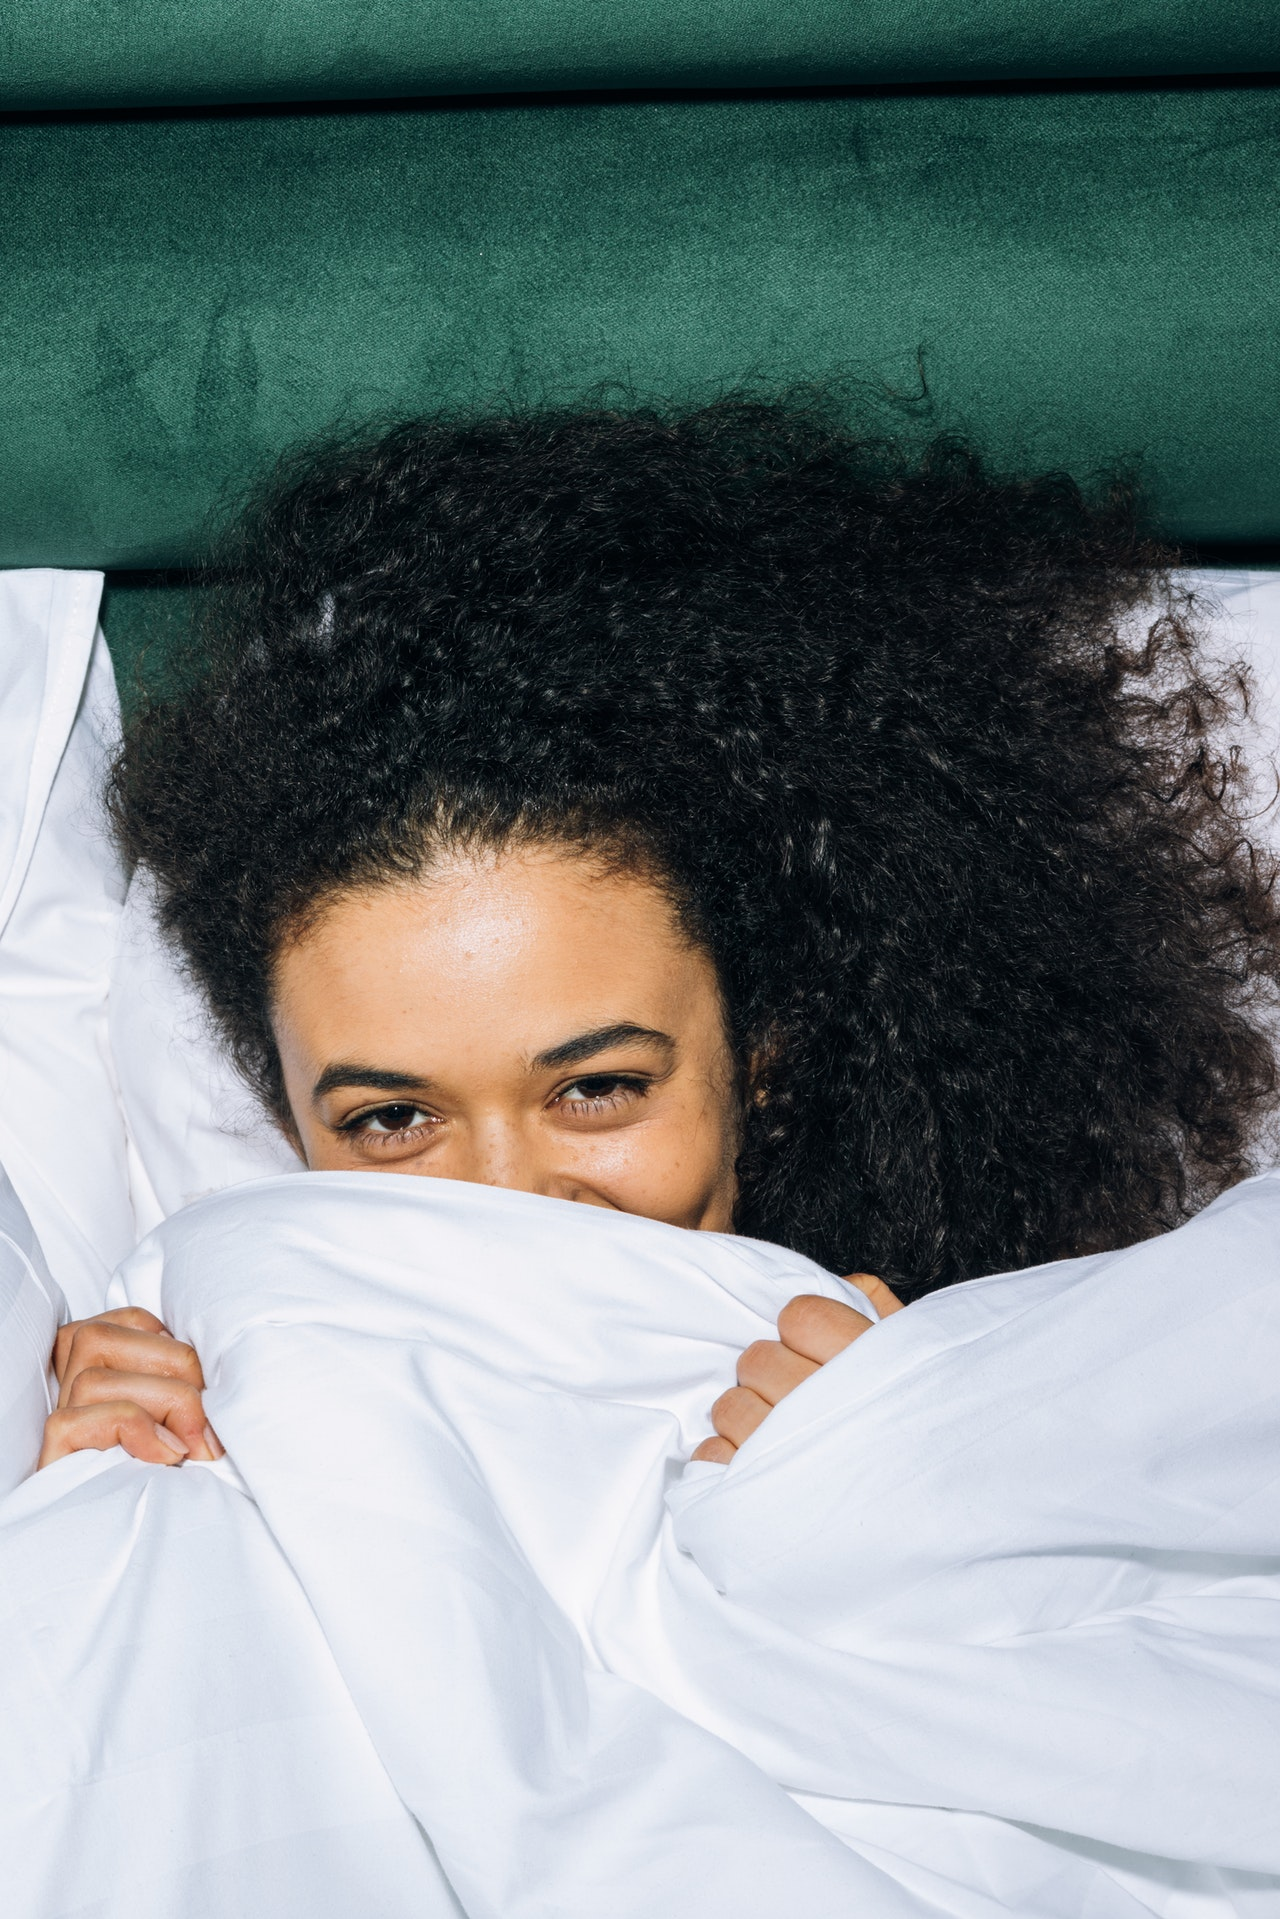 Smiling eyes of a girl with curly hair from under a blanket